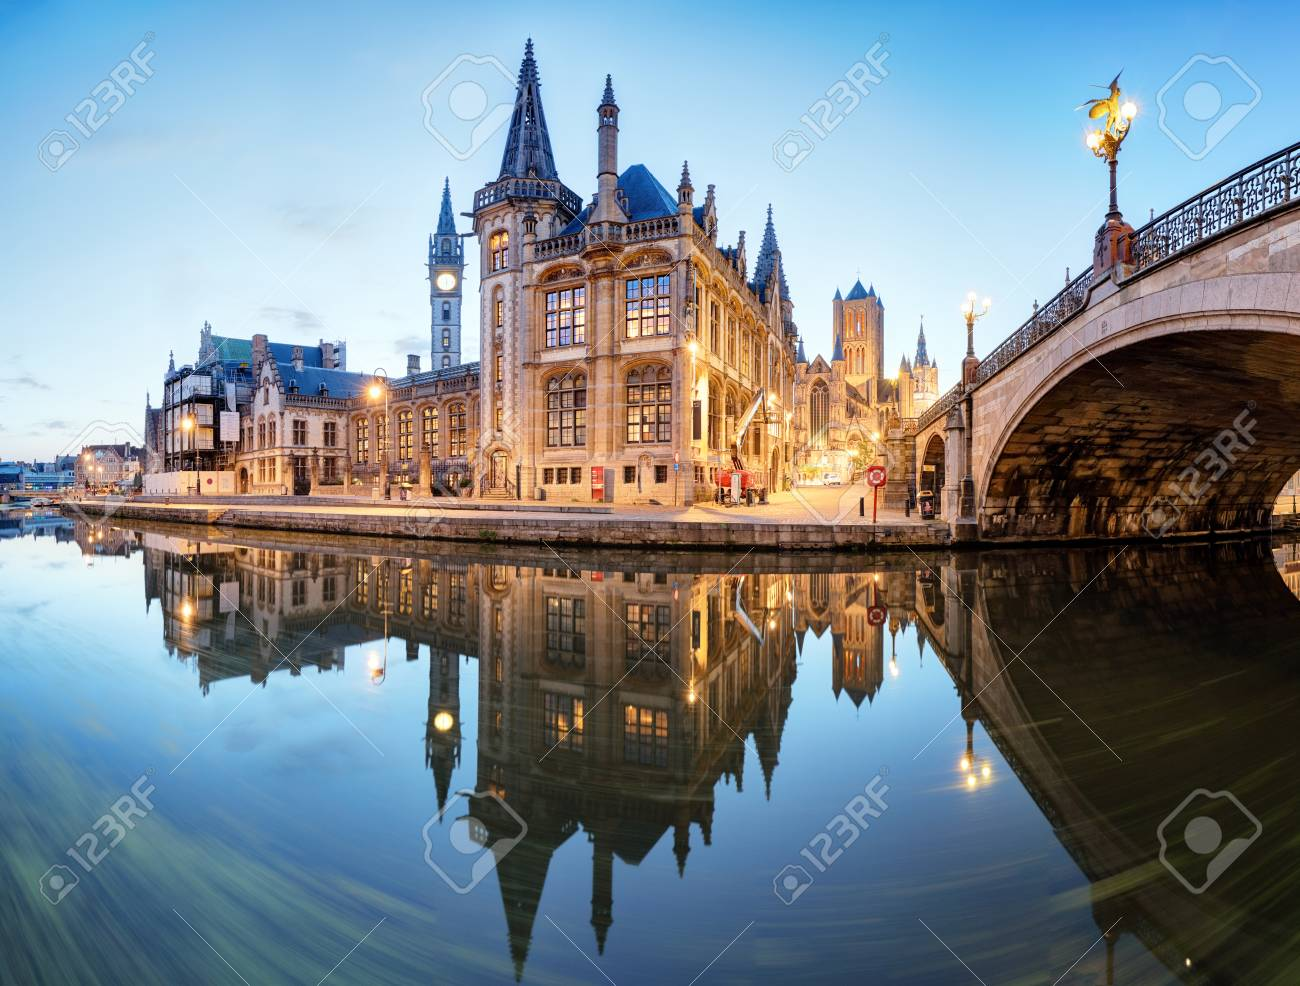 Ghent, Belgium during night, Gent old town - 91093404